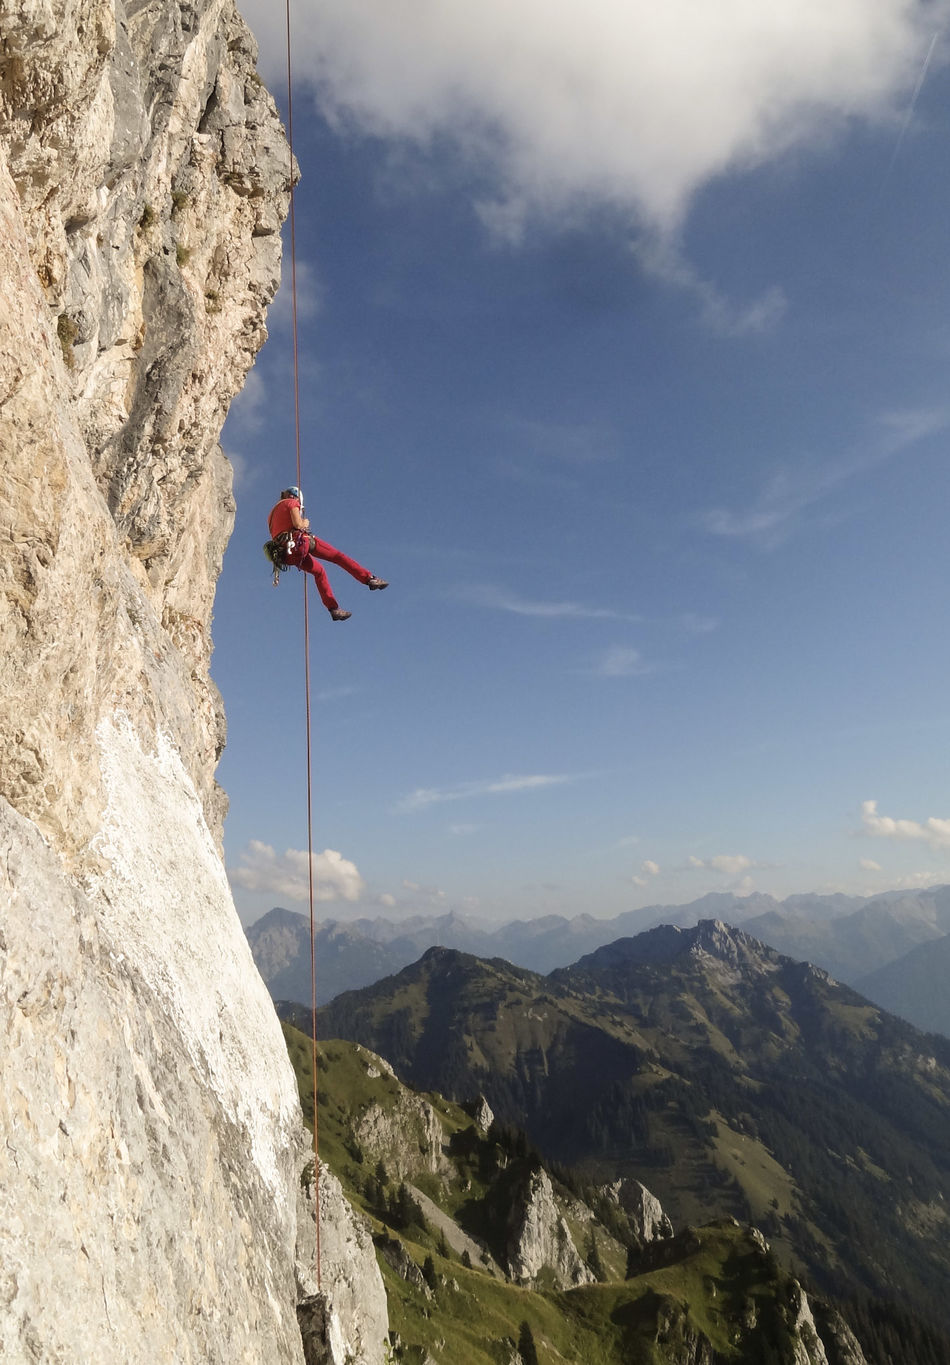 Adventure Alps Austria Beauty In Nature Climbing Extreme Sports Freedom Landscape Leisure Activity Lifestyles Mountain Mountain Peak Mountain Range Nature One Person Outdoors Rock - Object Rock Climbing Sky Sports Photography Woman Courage Wire